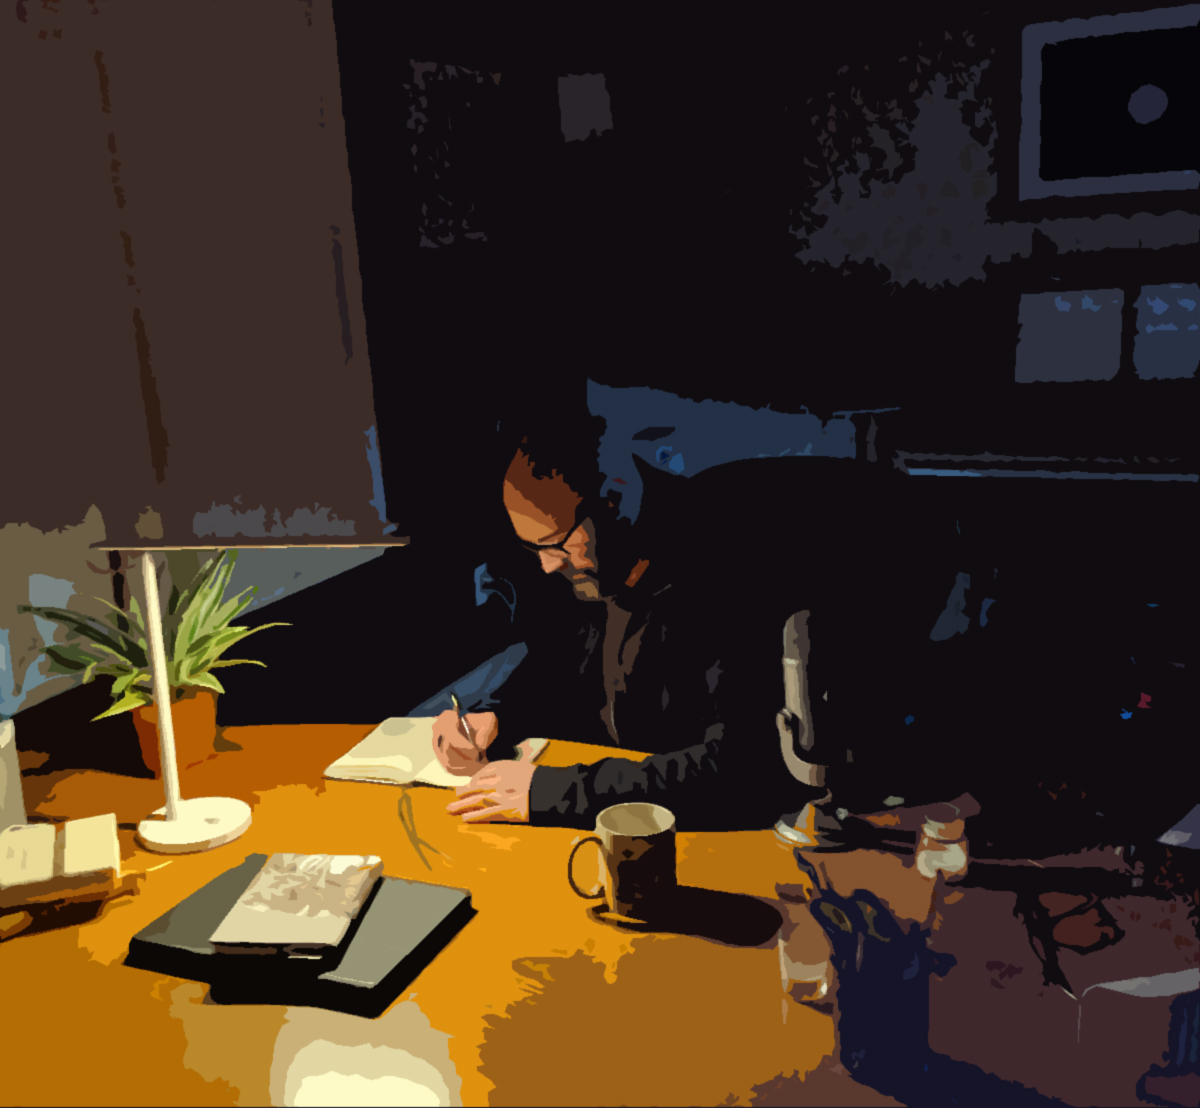 Photo of Anthony Pica writing at his desk at night